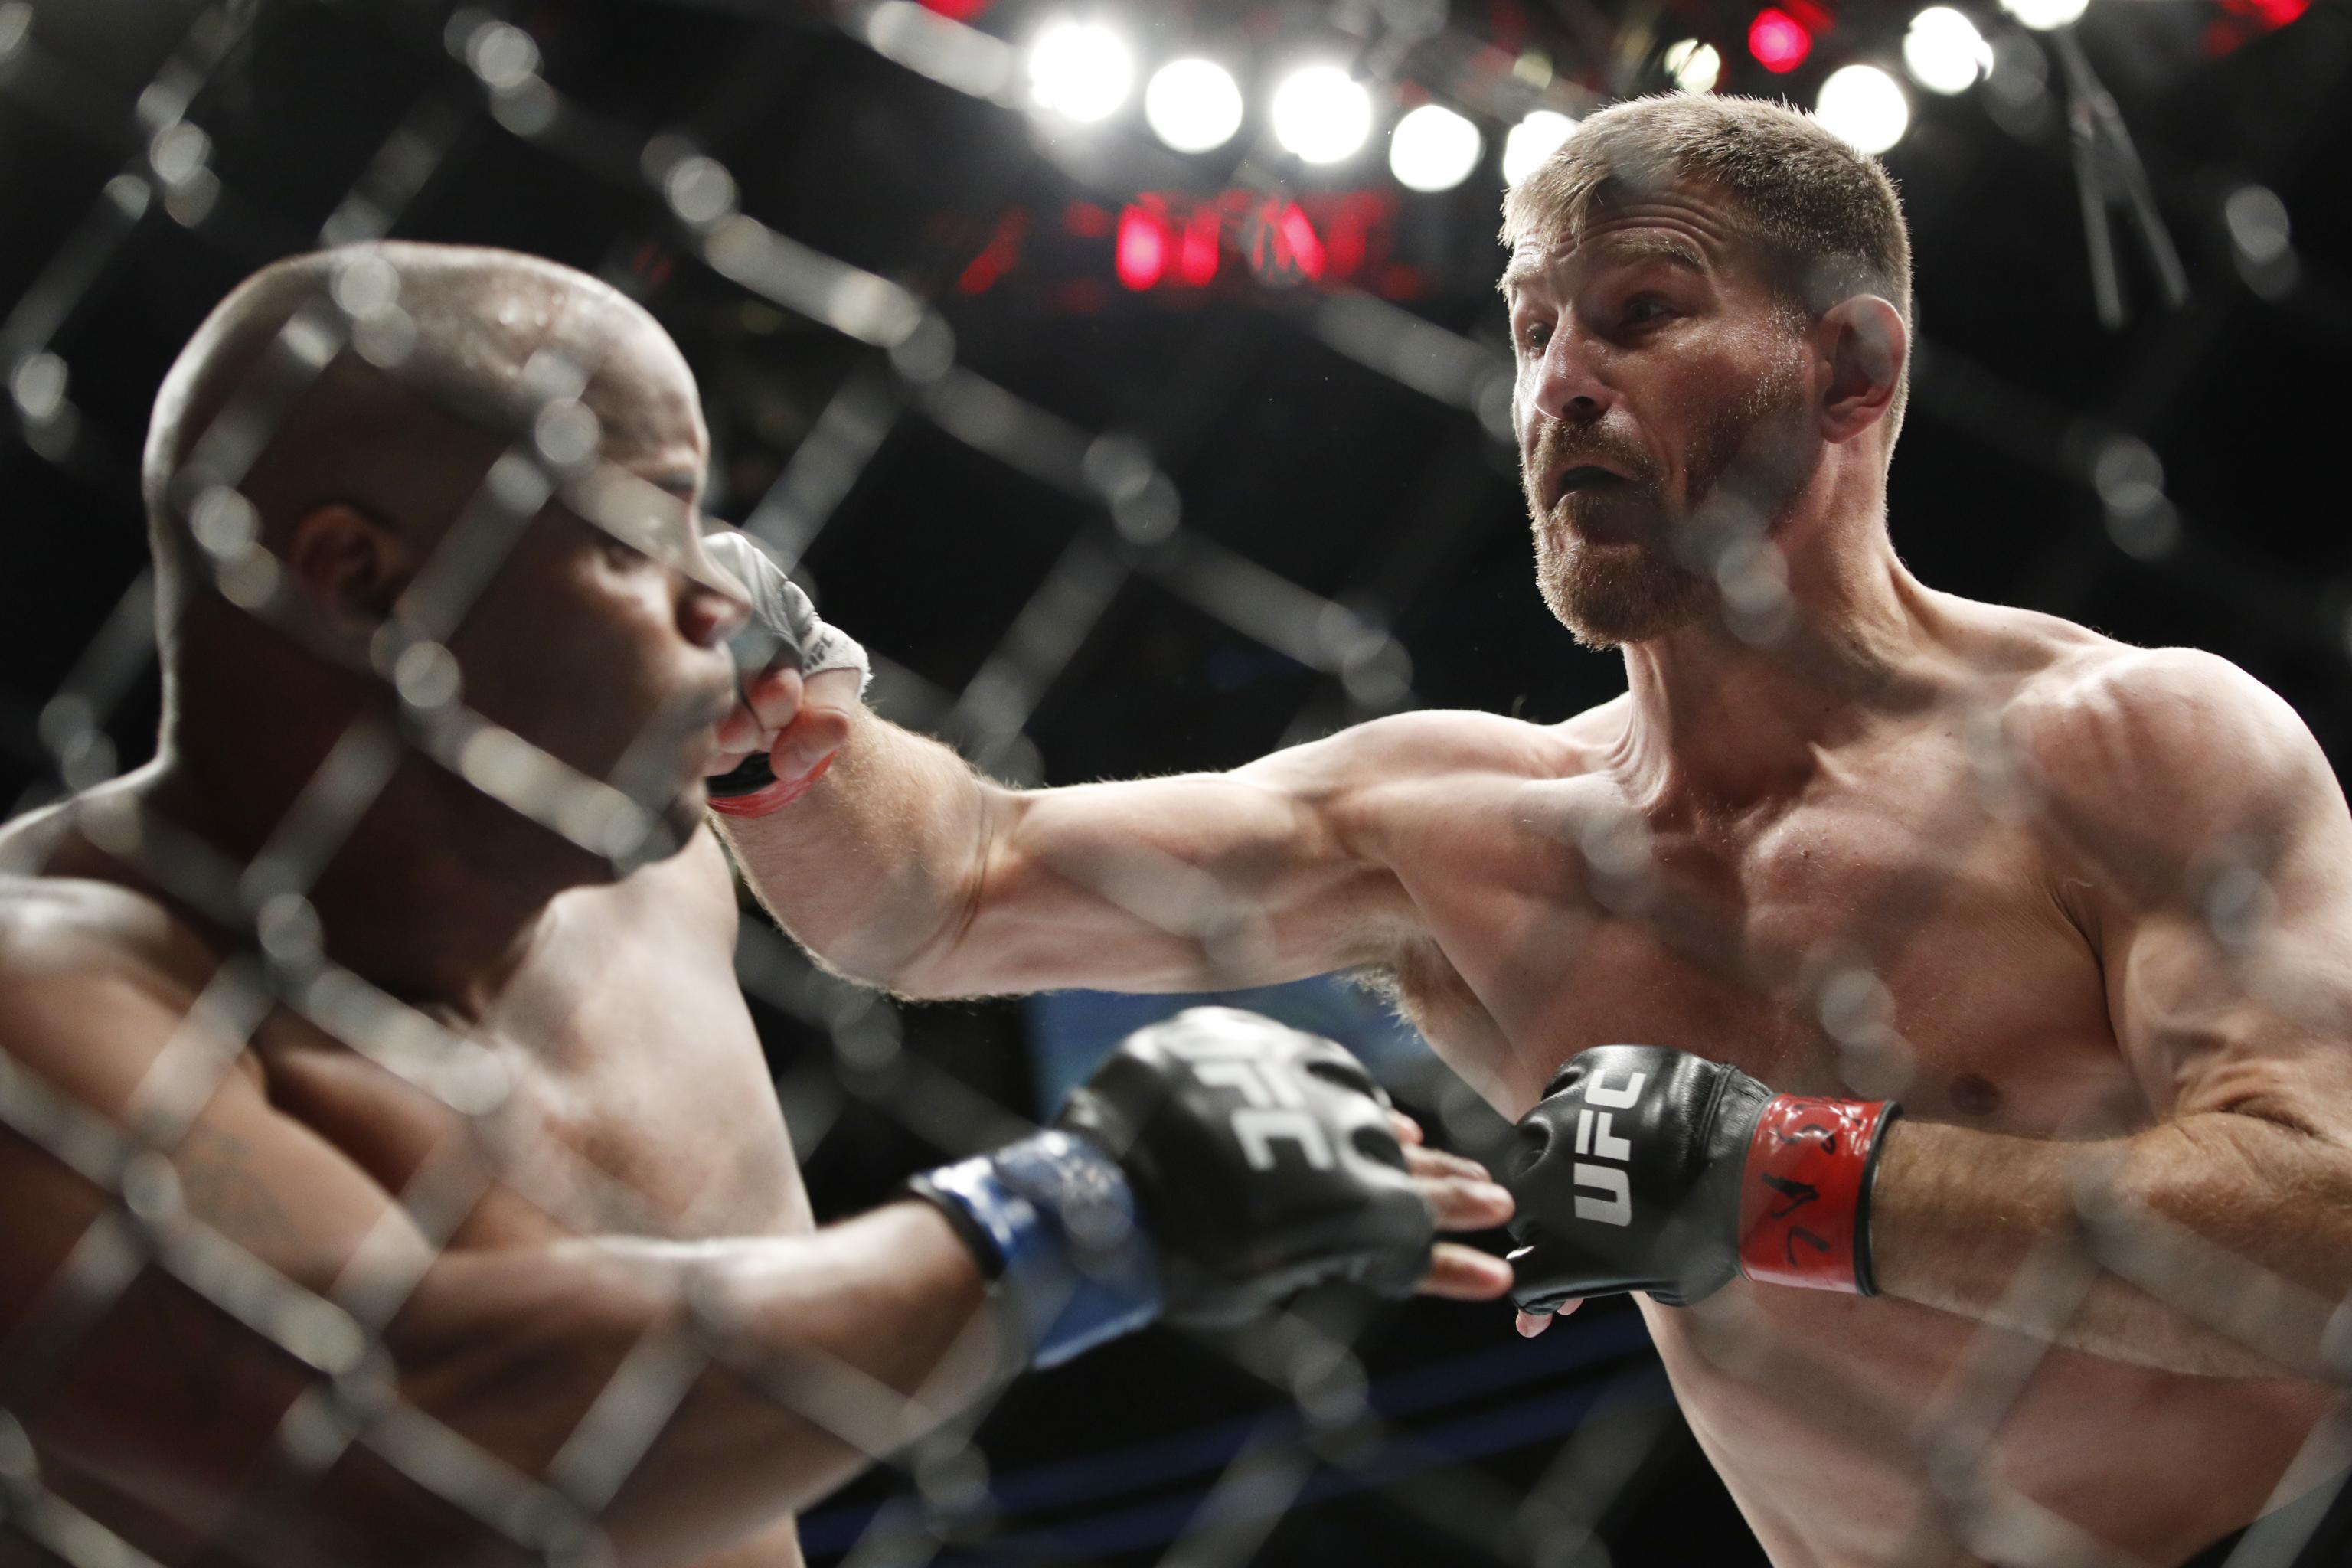 Ufc 252 Results Winners Scorecards From Miocic Vs Cormier 3 Card Bleacher Report Latest News Videos And Highlights